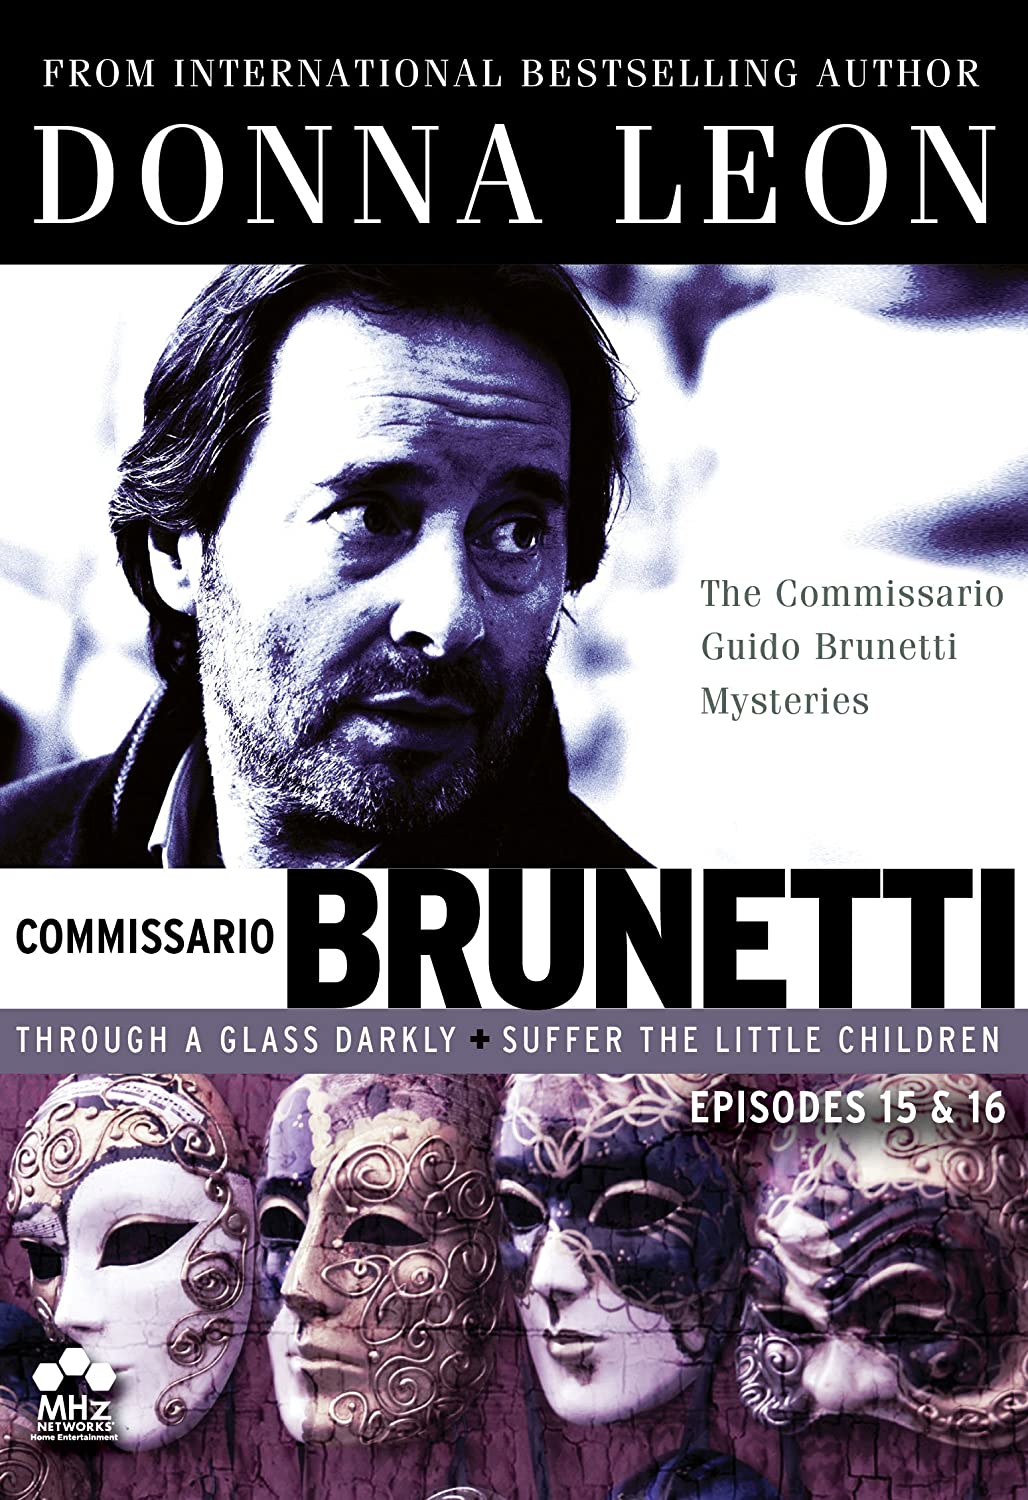 Commissario Guido Brunetti Mysteries - Episodes 15 & 16